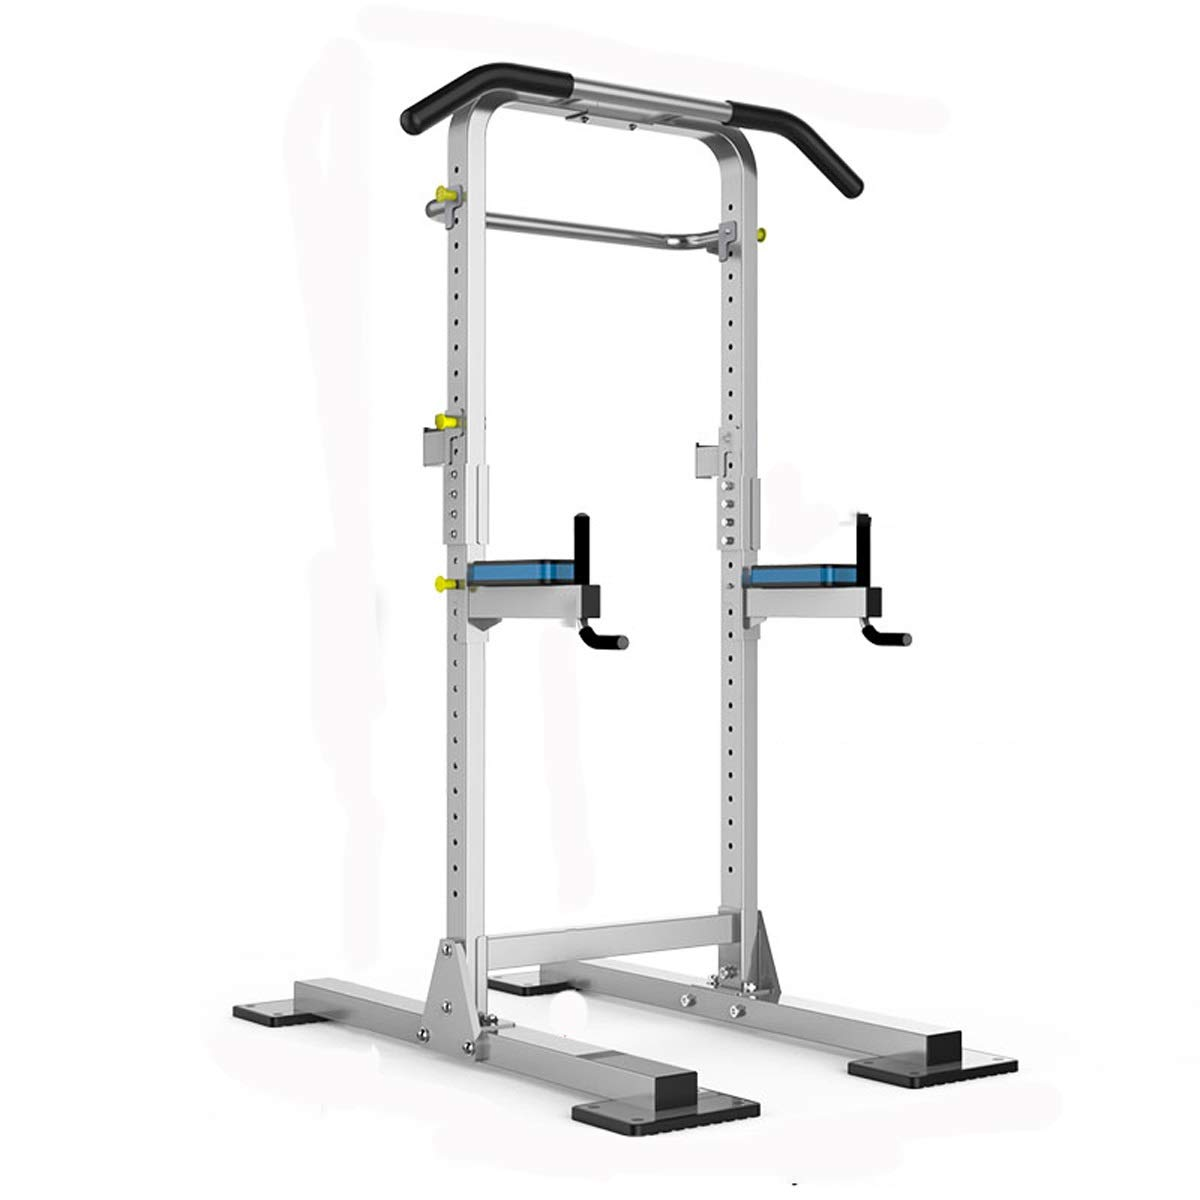 Pull-ups Home Indoor Horizontal Bar Multi-Function Simple Parallel Bars Squat Bench Press Fitness Equipment by Baianju